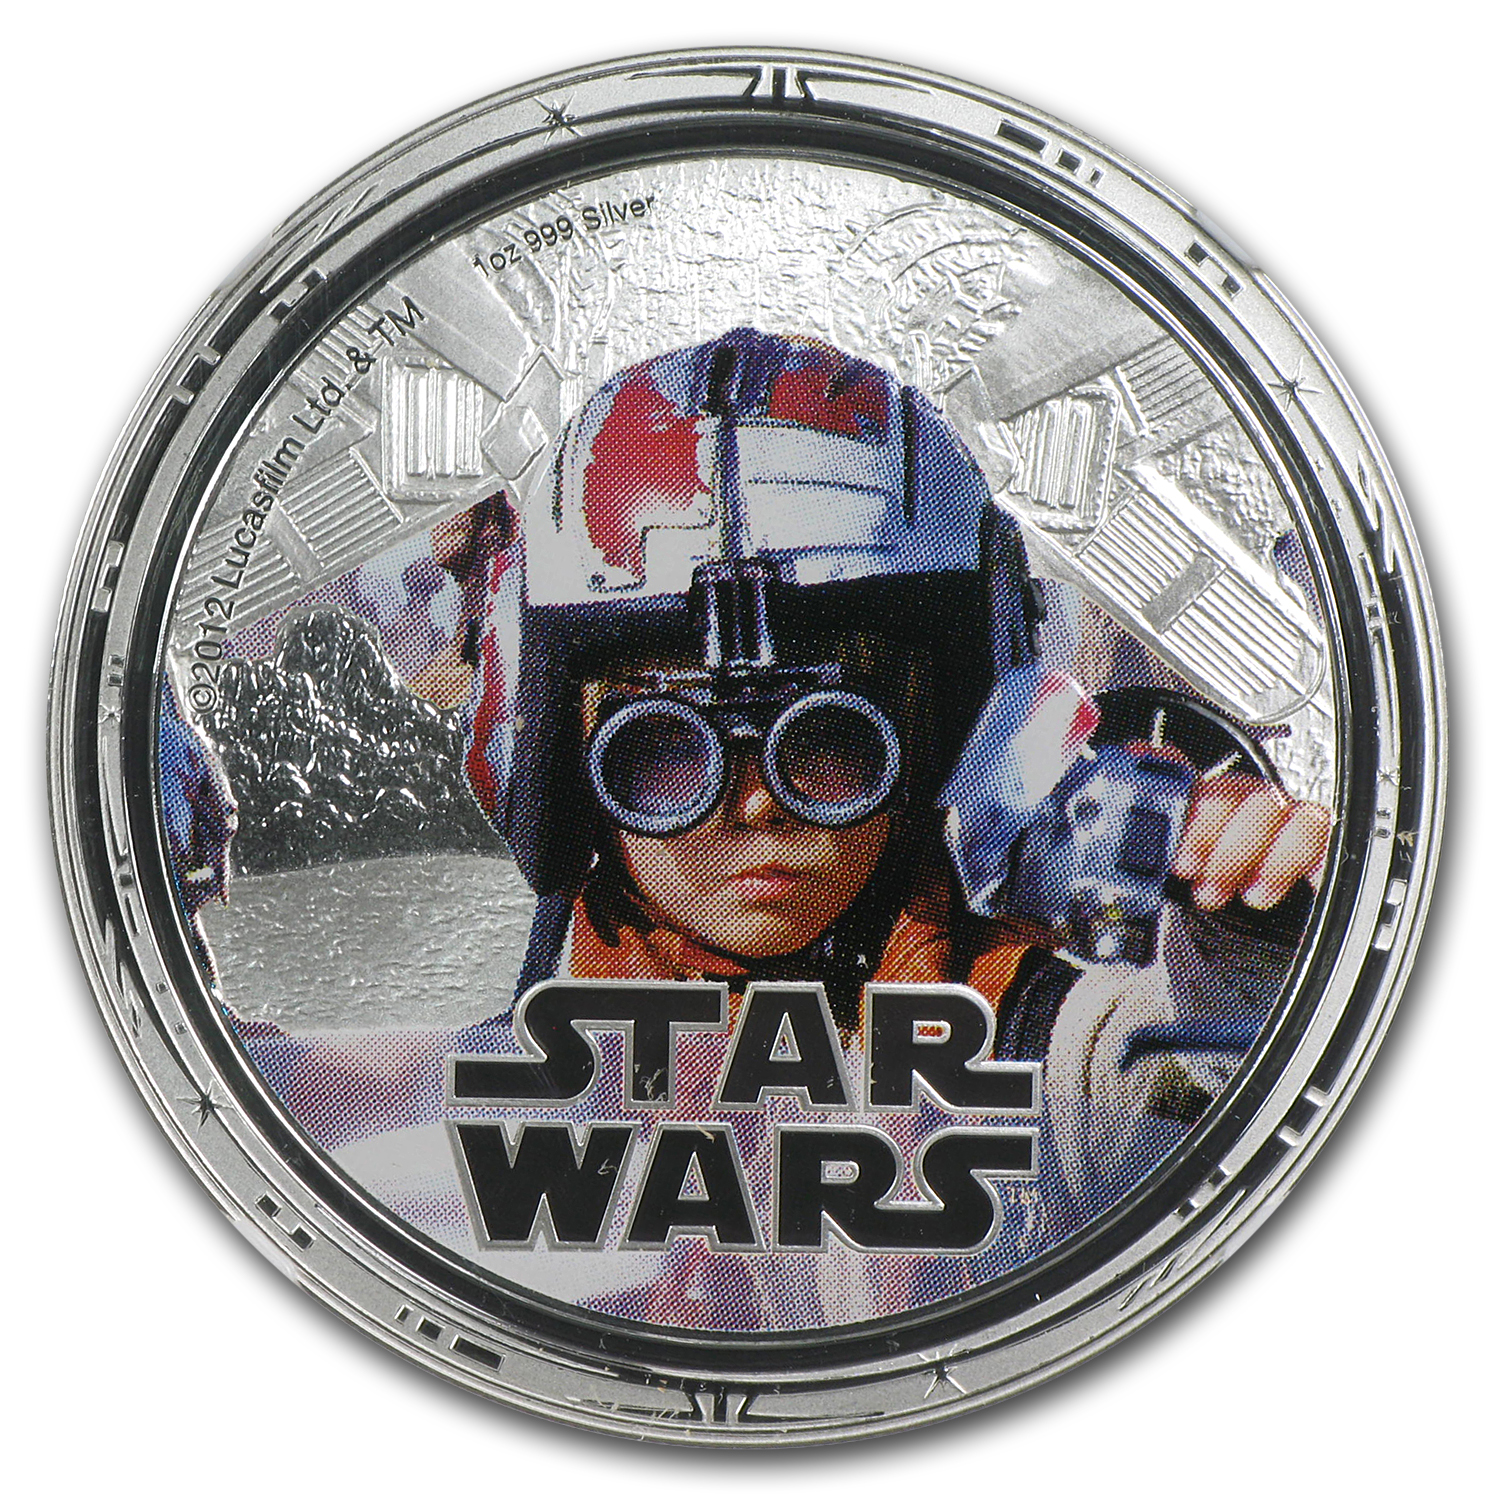 2012 Niue 1 oz Silver $2 Star Wars Anakin Skywalker PF-69 NGC